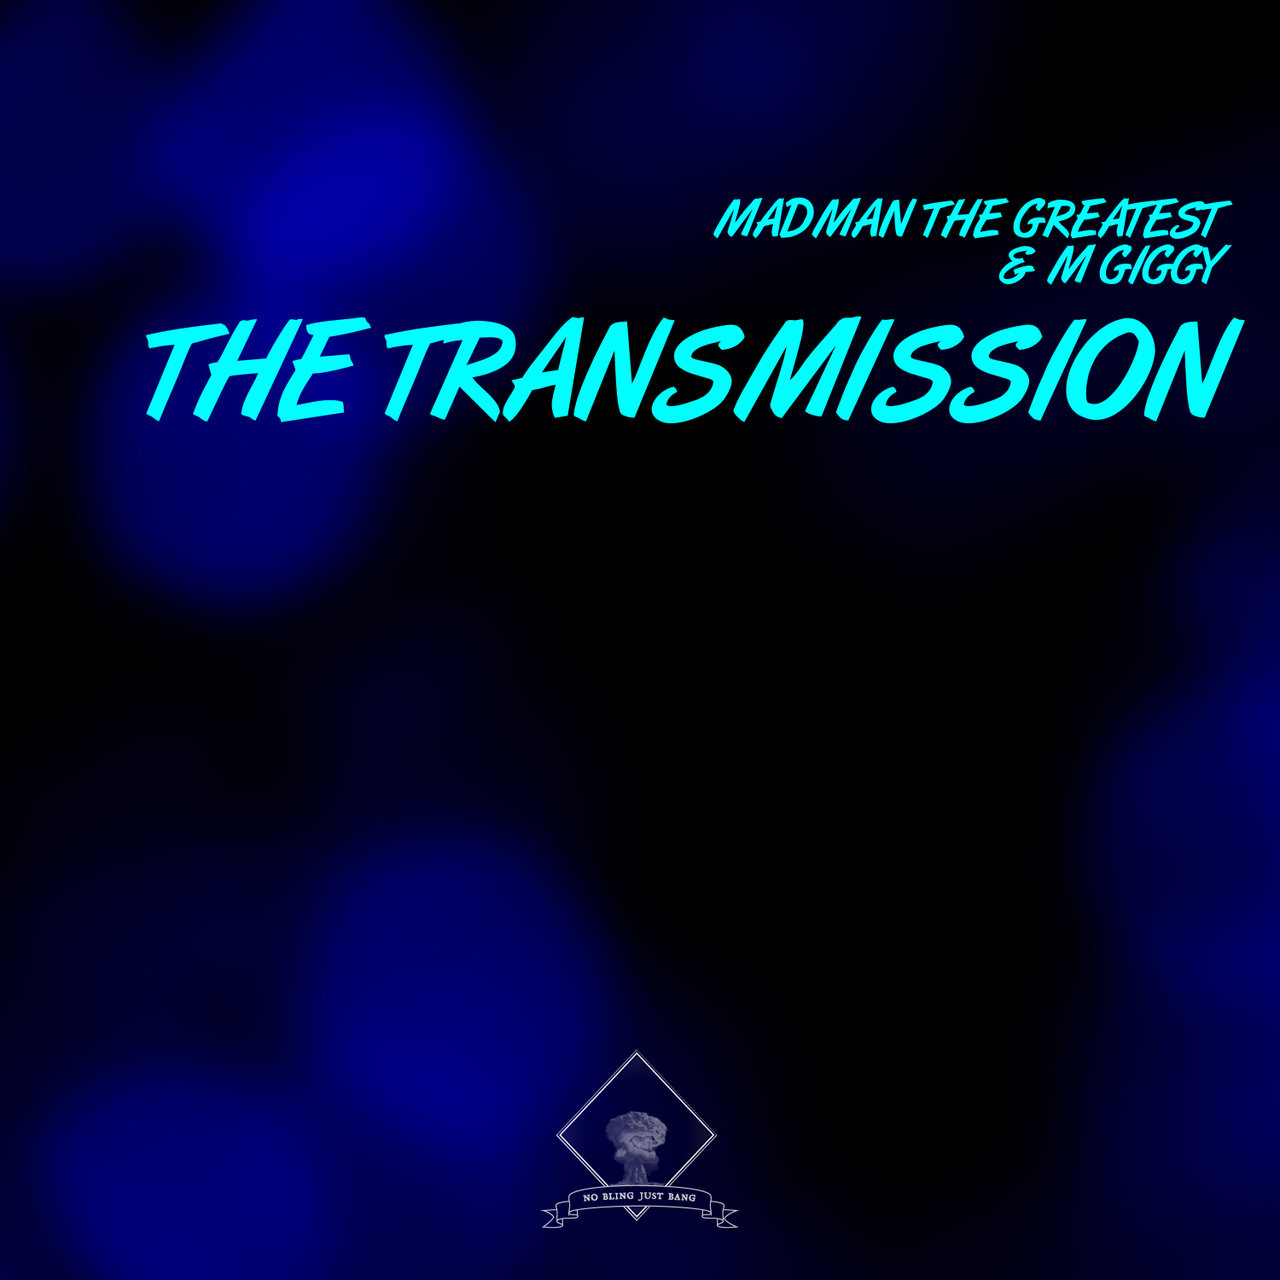 The Transmission